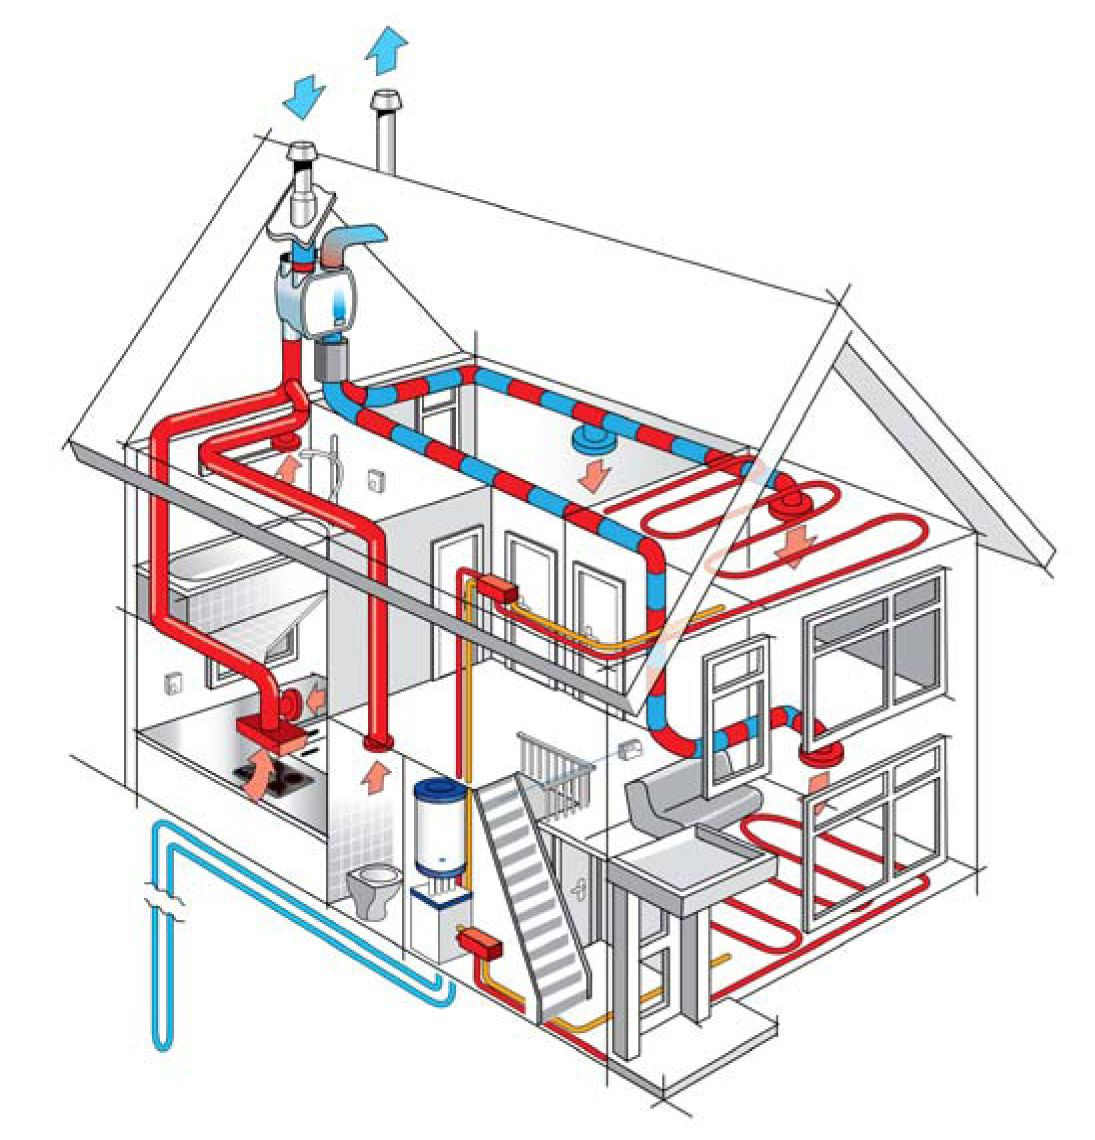 heat recovery ventilator diagram - google search | eco | pinterest